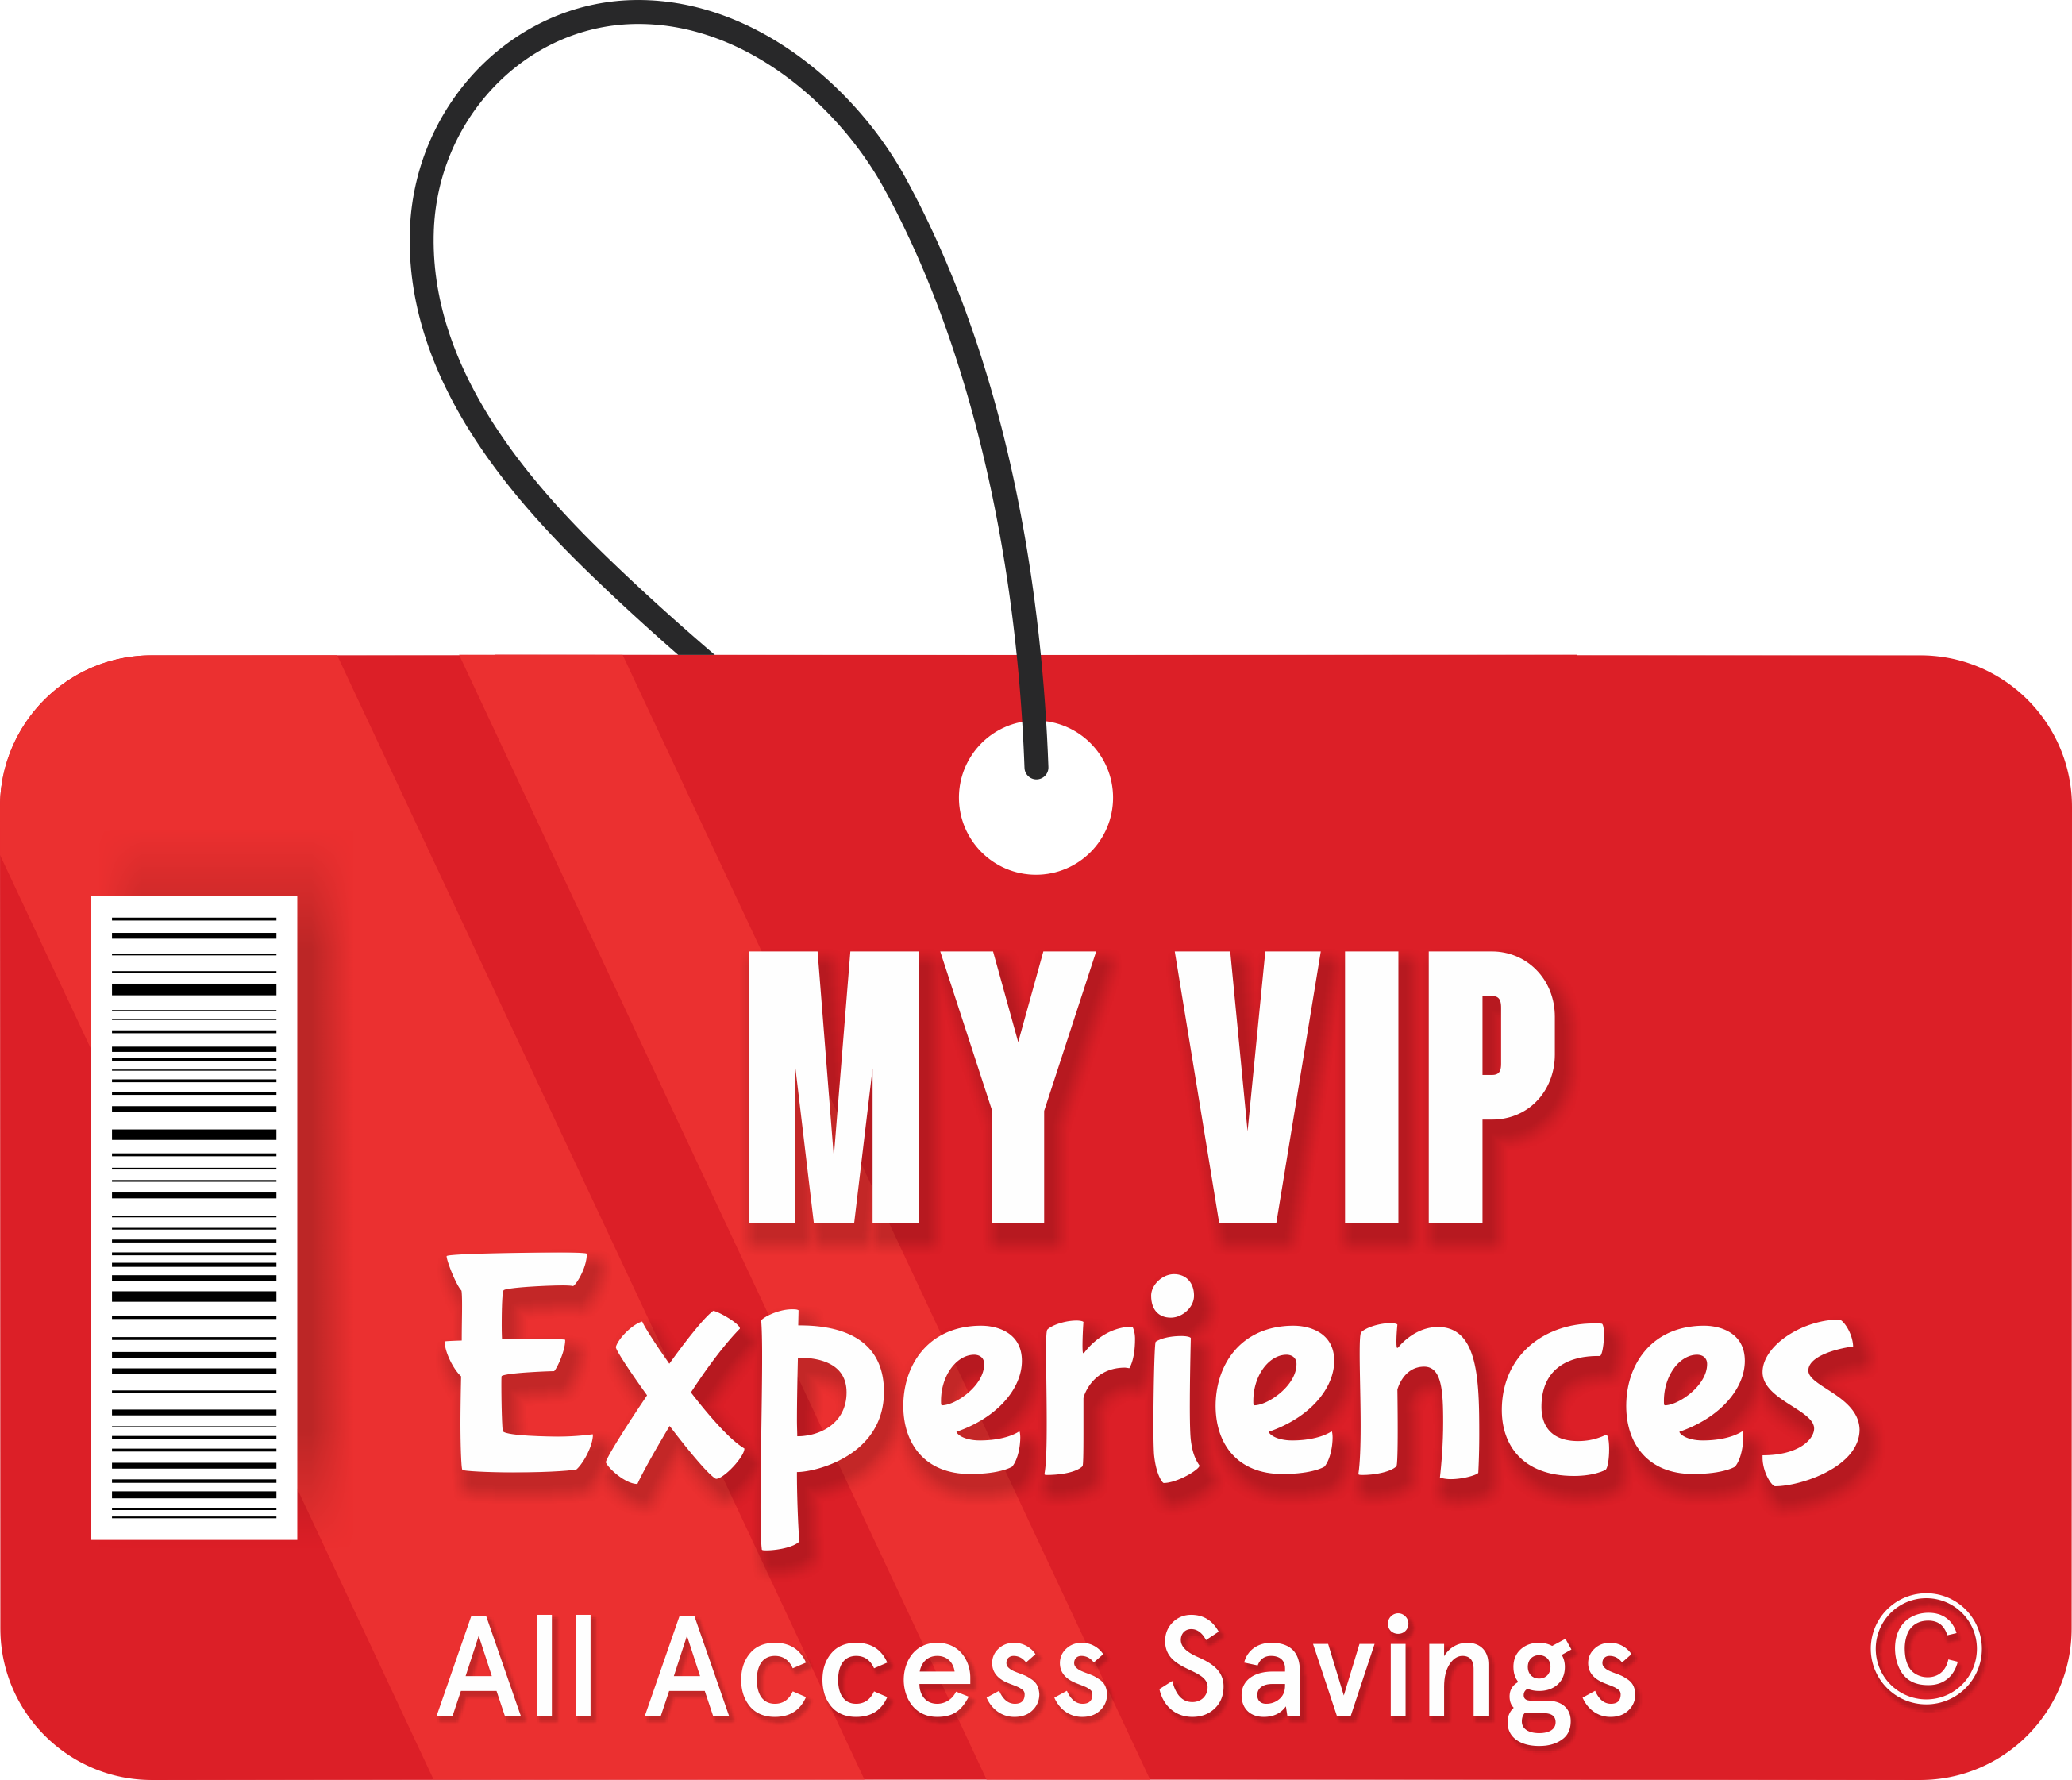 My VIP Experiences is Becoming The One-Stop Solution to Unlimited & Affordable VIP Entertainment in The US